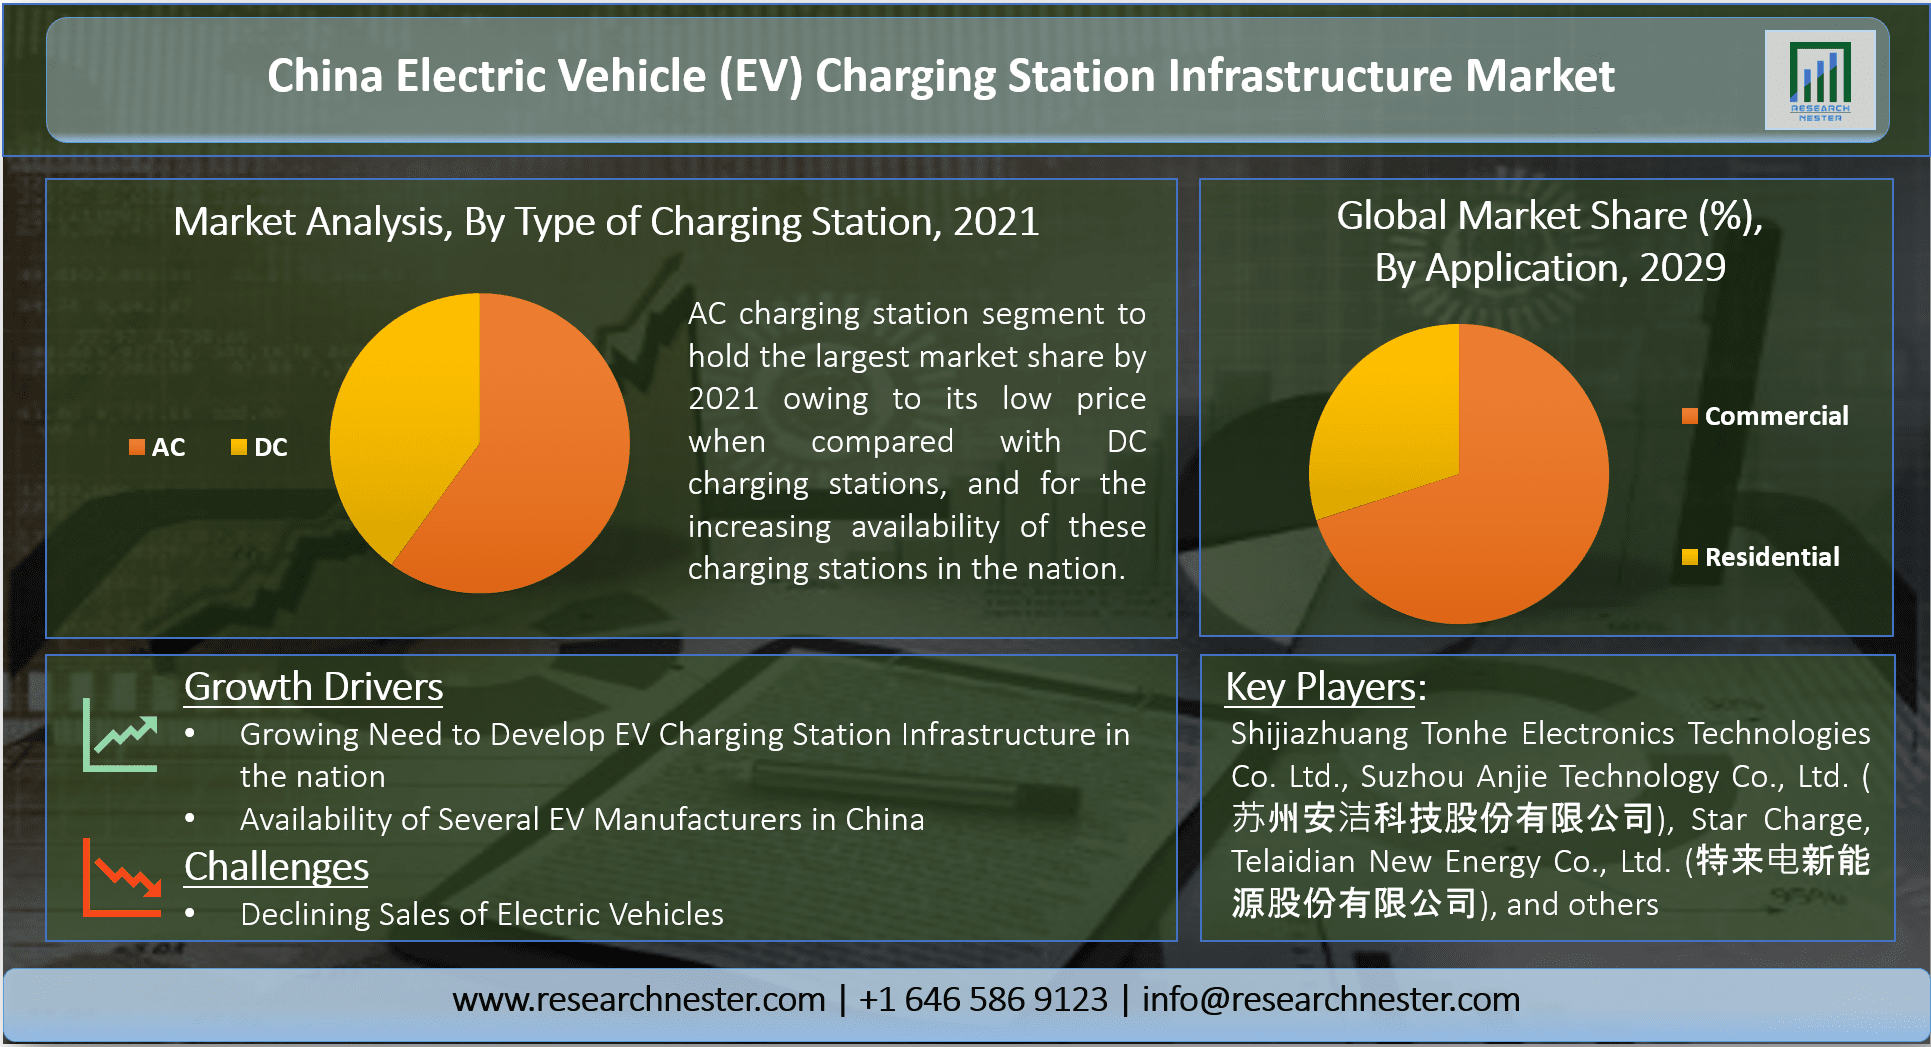 China Electric Vehicle (EV) Charging Station Infrastructure Market